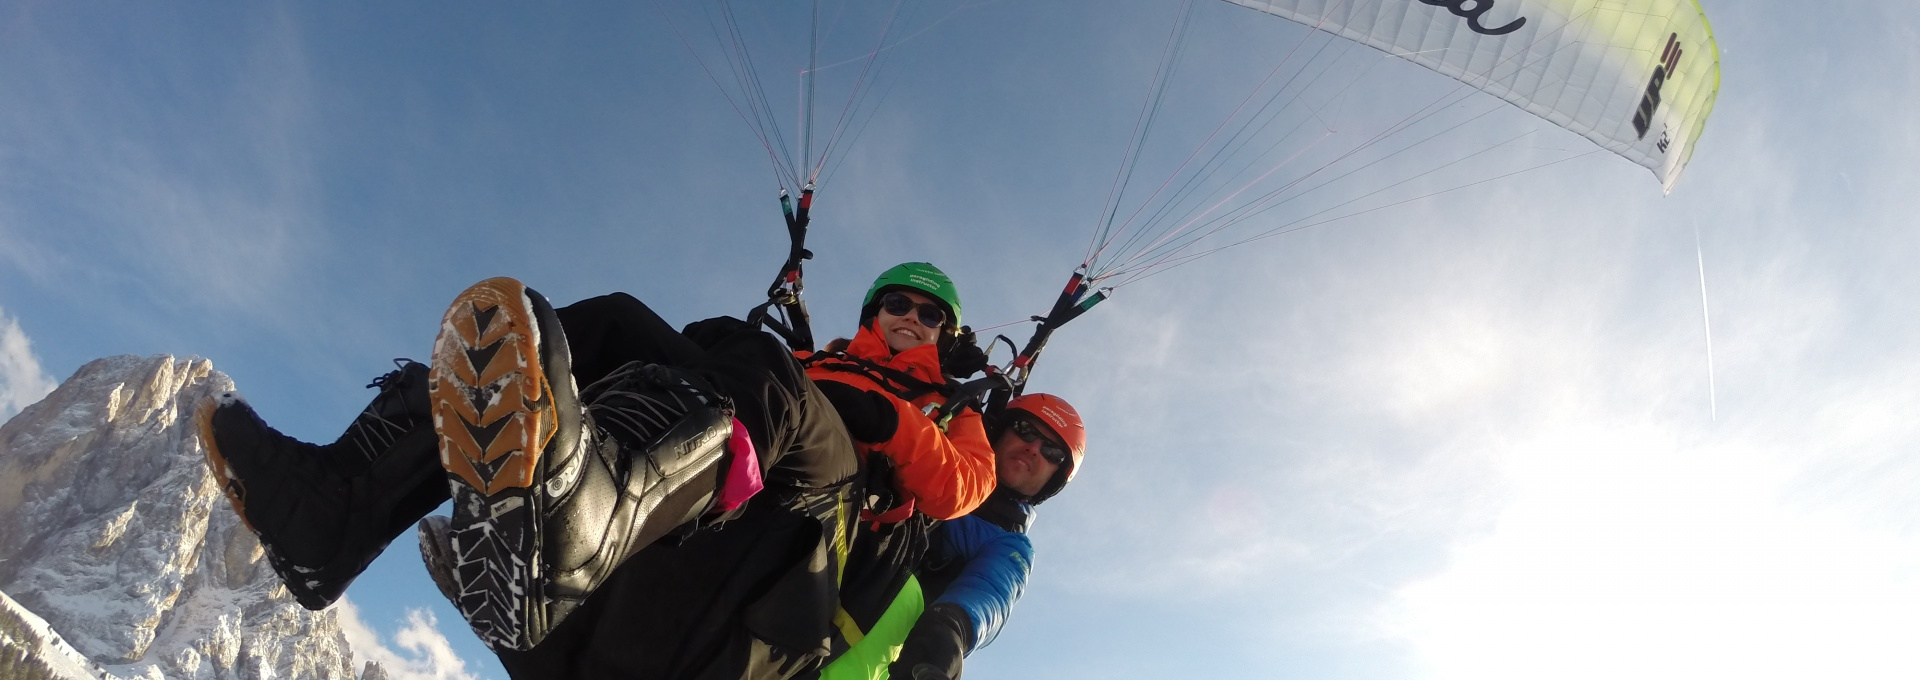 Paragliding in Winter Dolomites